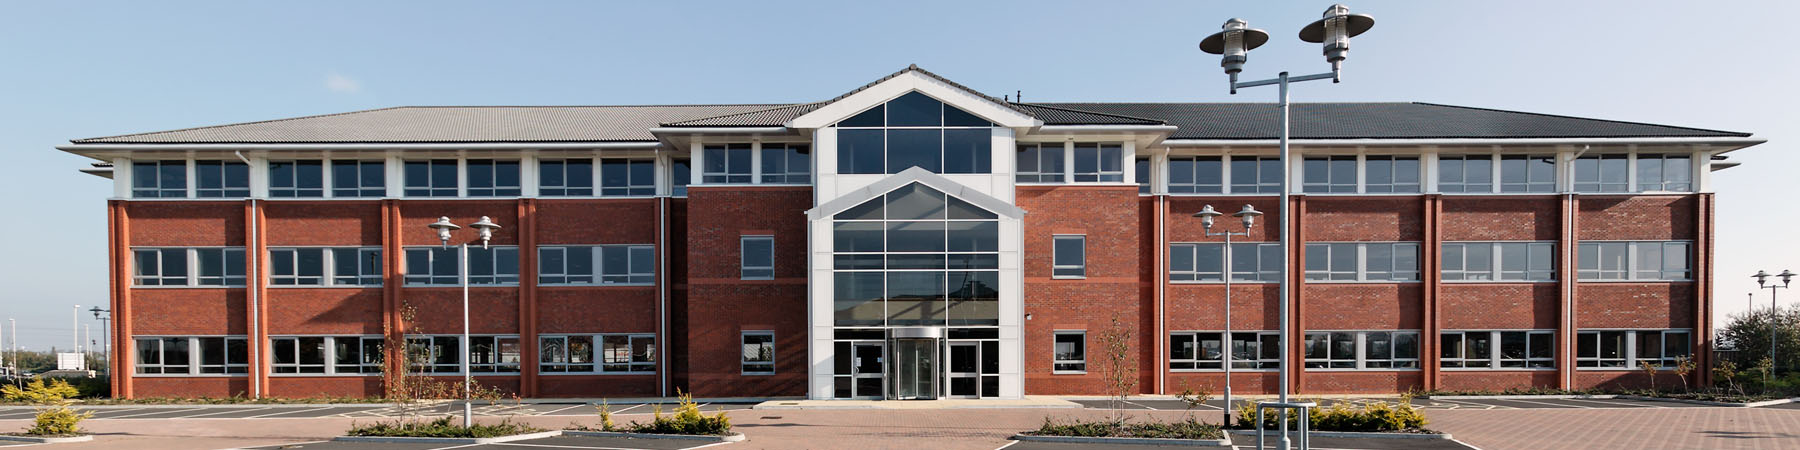 Office building on business park